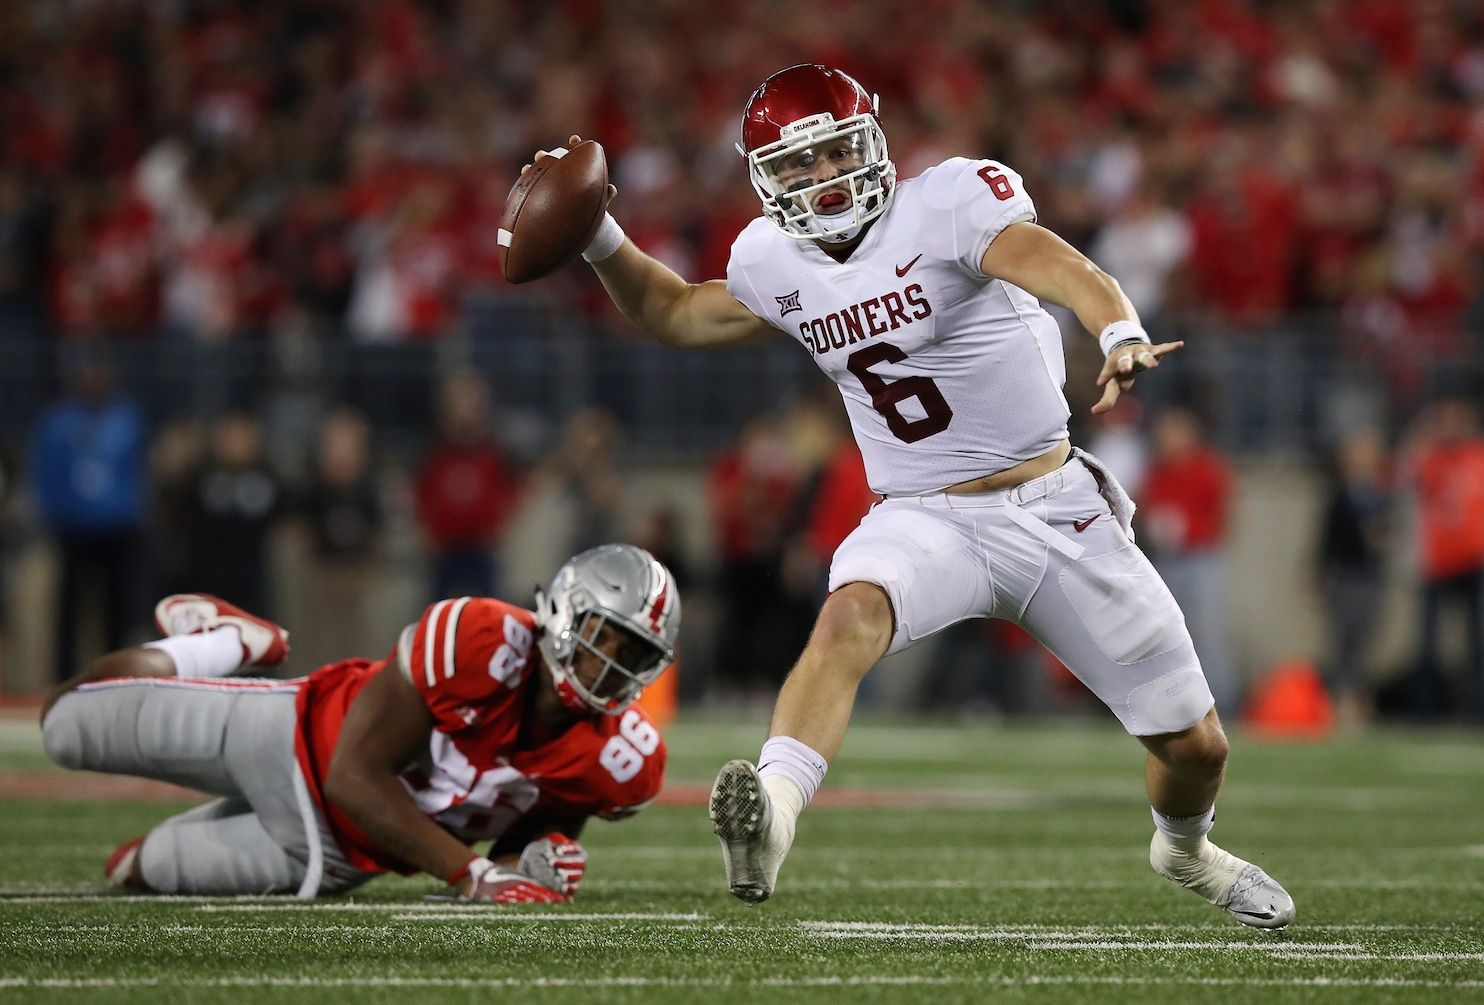 College football winners and losers: Oklahoma's win is huge for Baker Mayfield and Big 12 - Washington Post